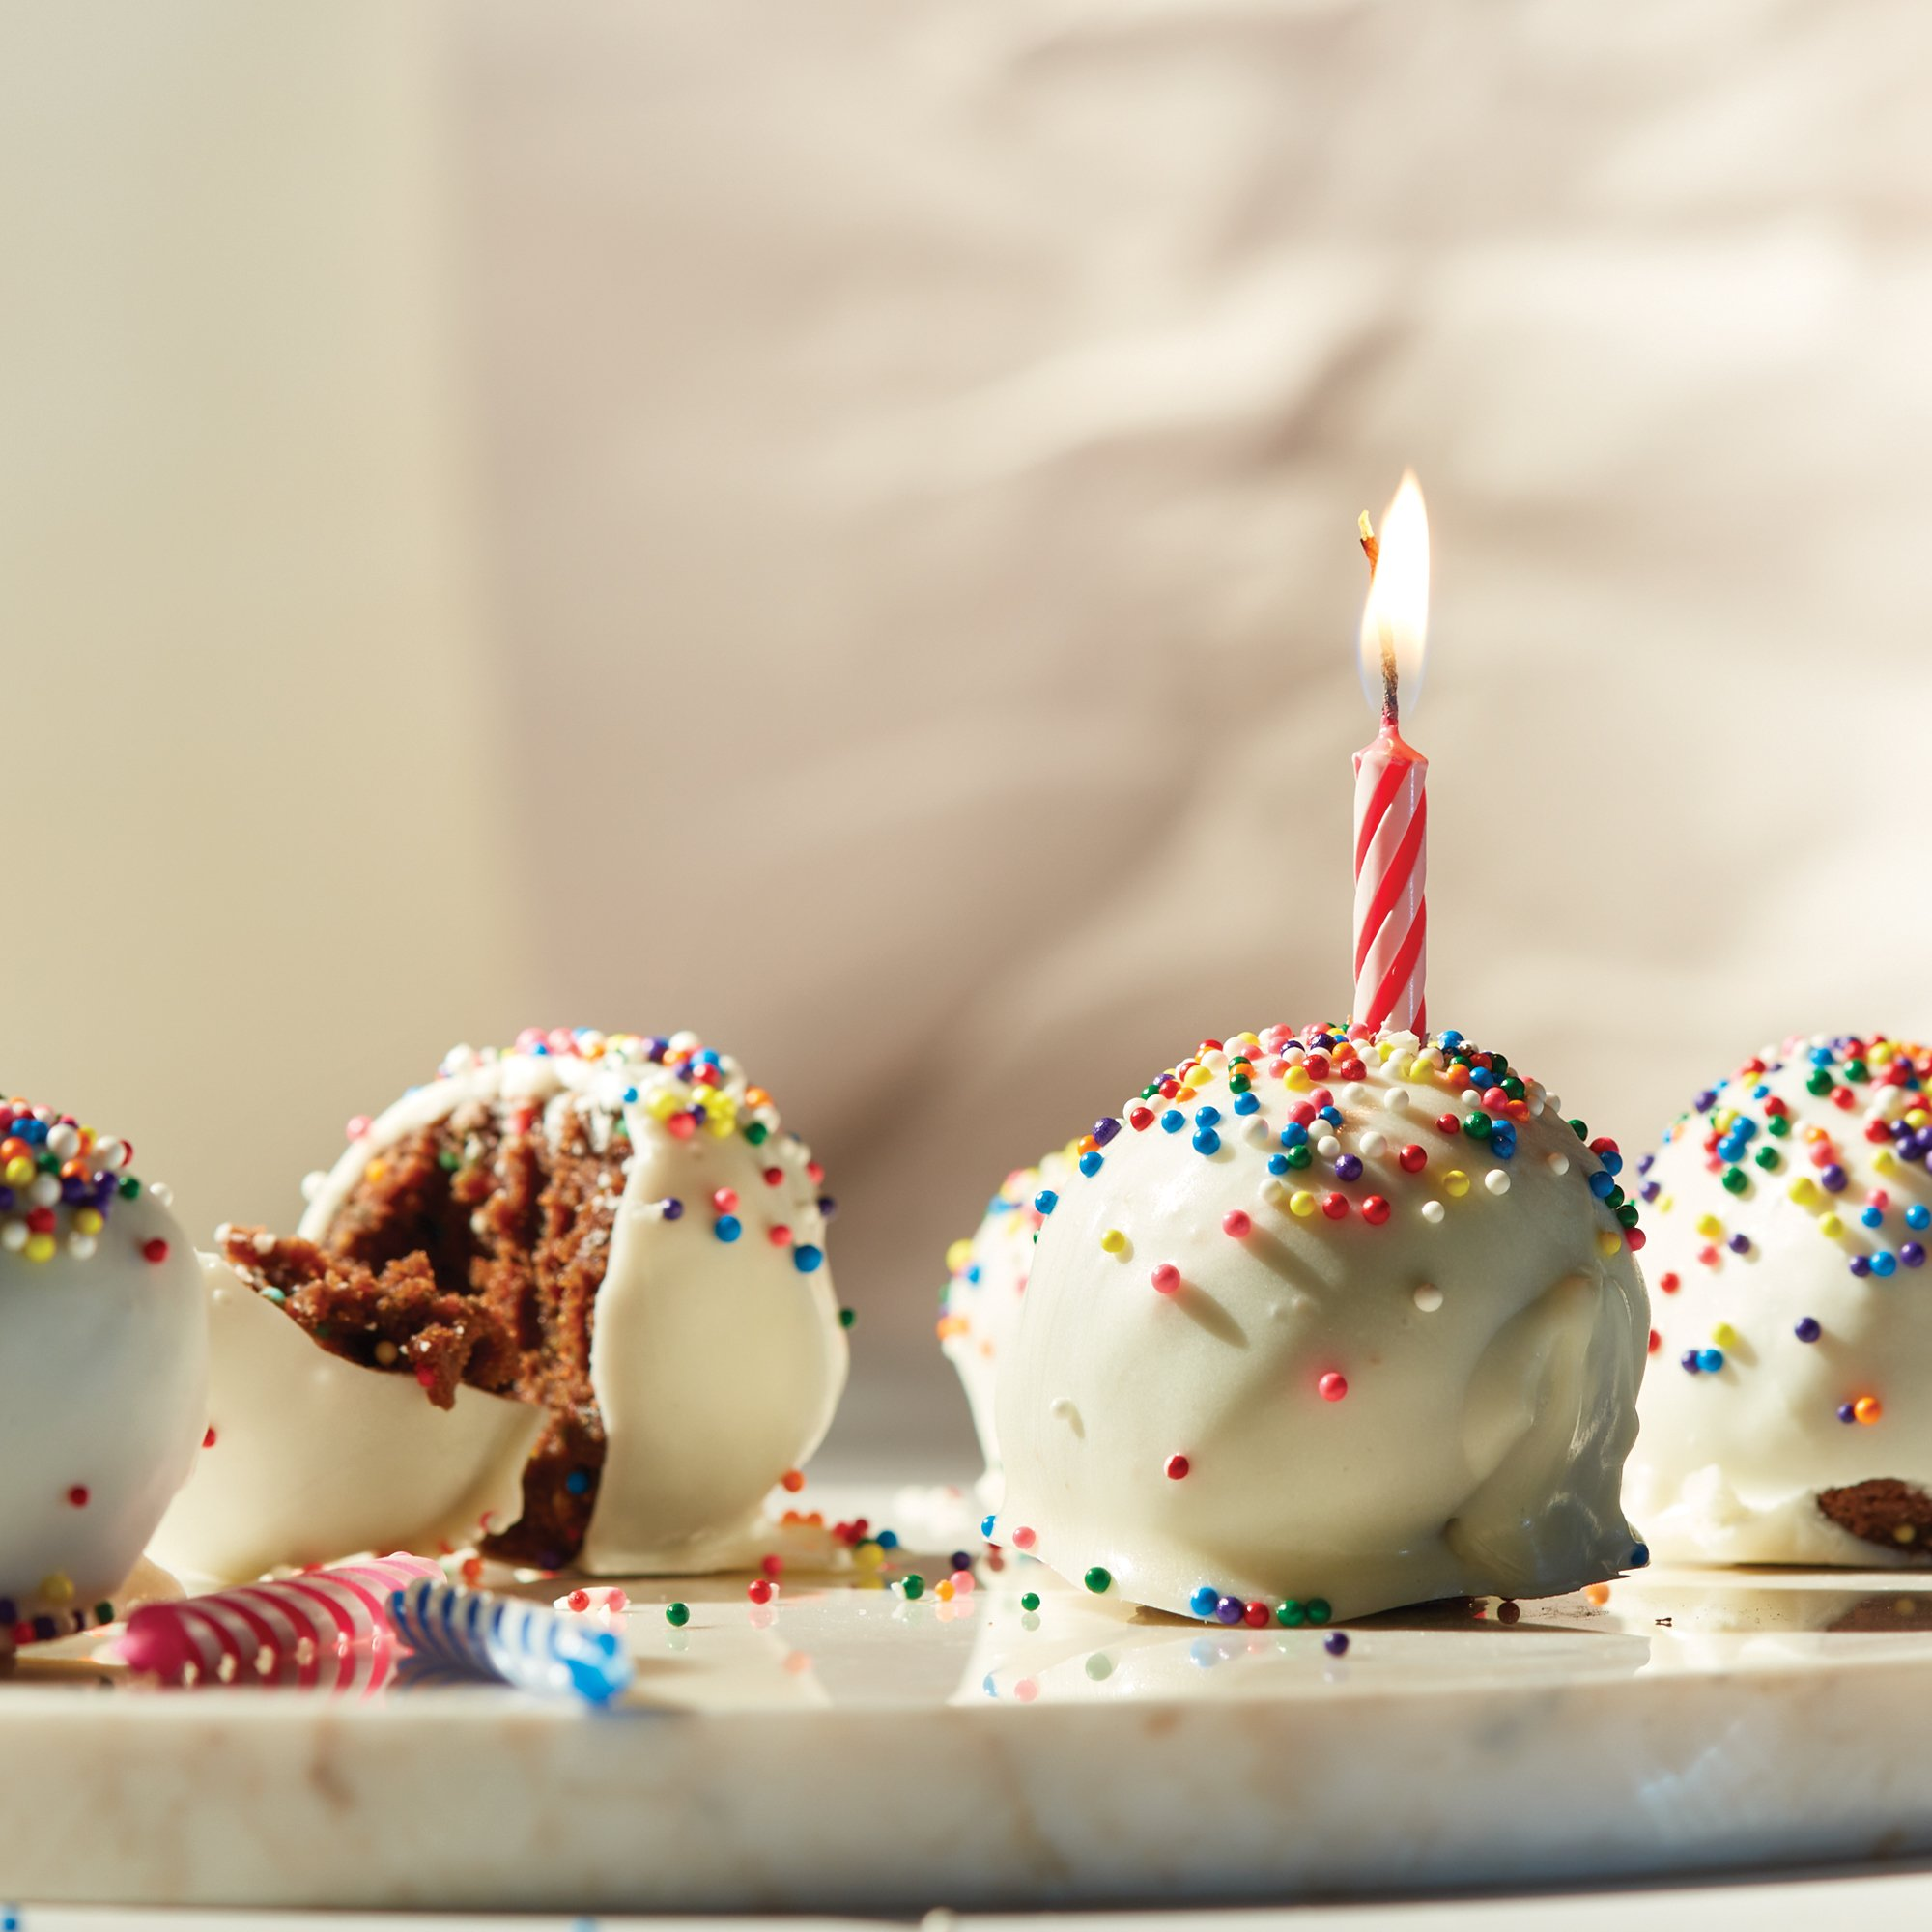 Swell Birthday Cake Balls Recipe From Heb Personalised Birthday Cards Veneteletsinfo